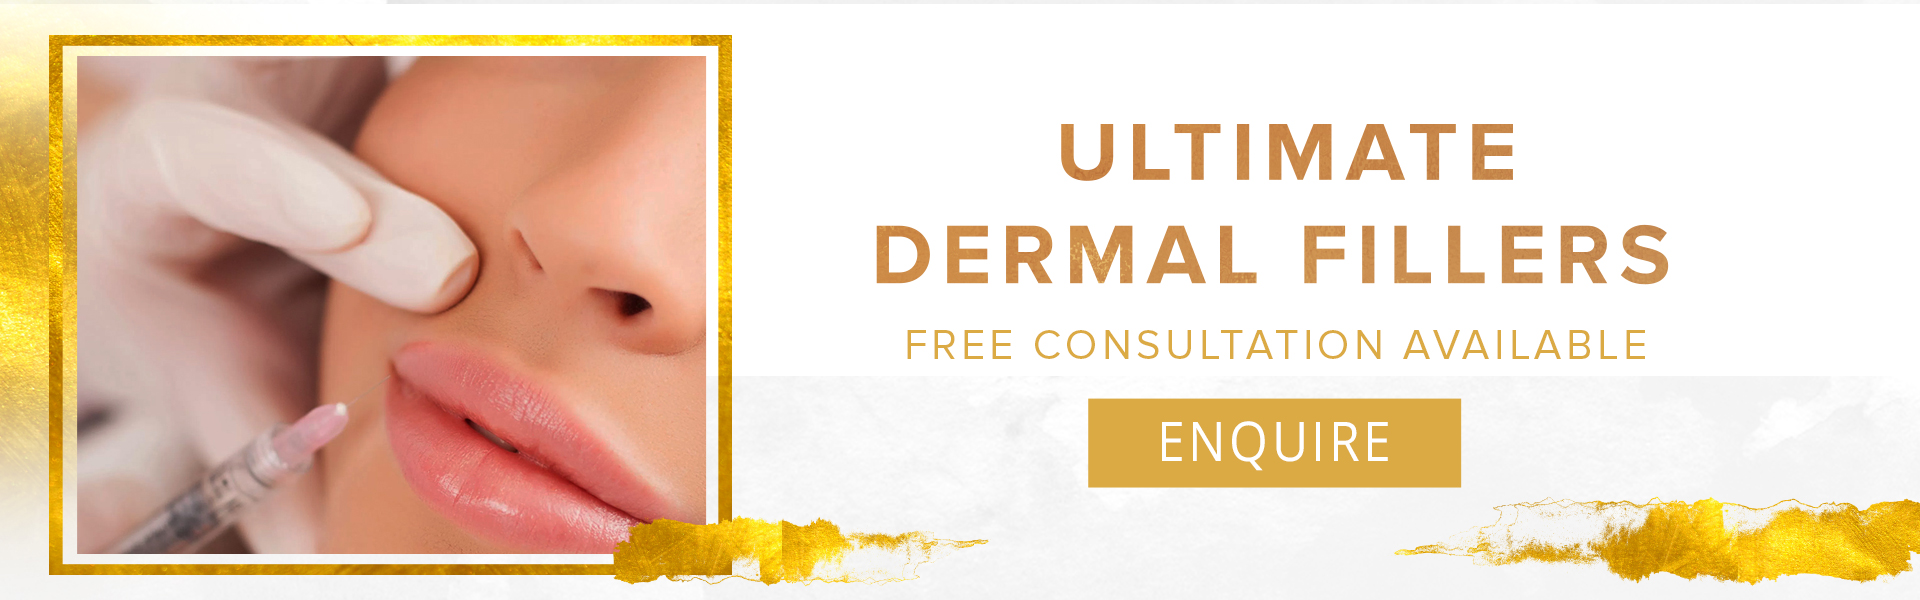 Ultimate Dermal Fillers